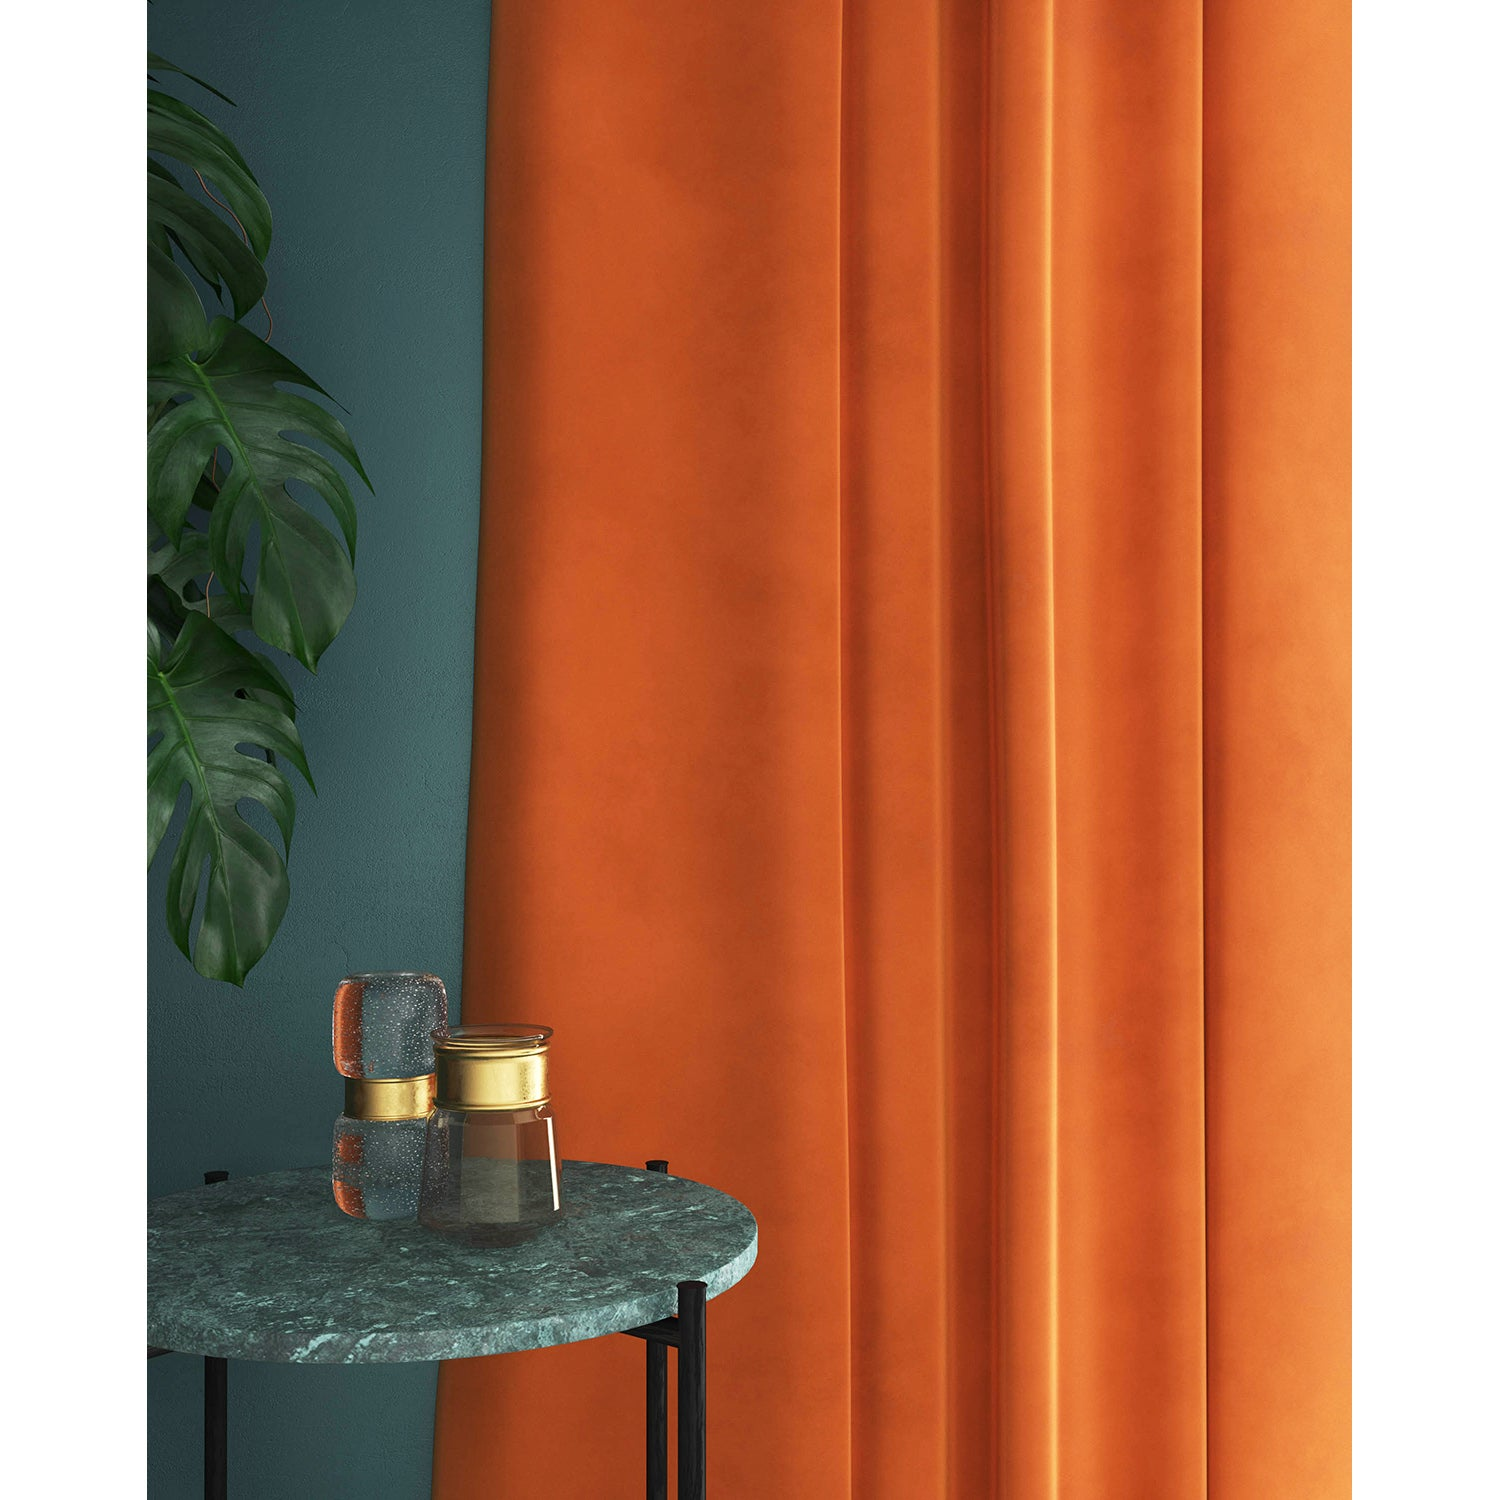 Orange velvet curtains with a stain resistant finish